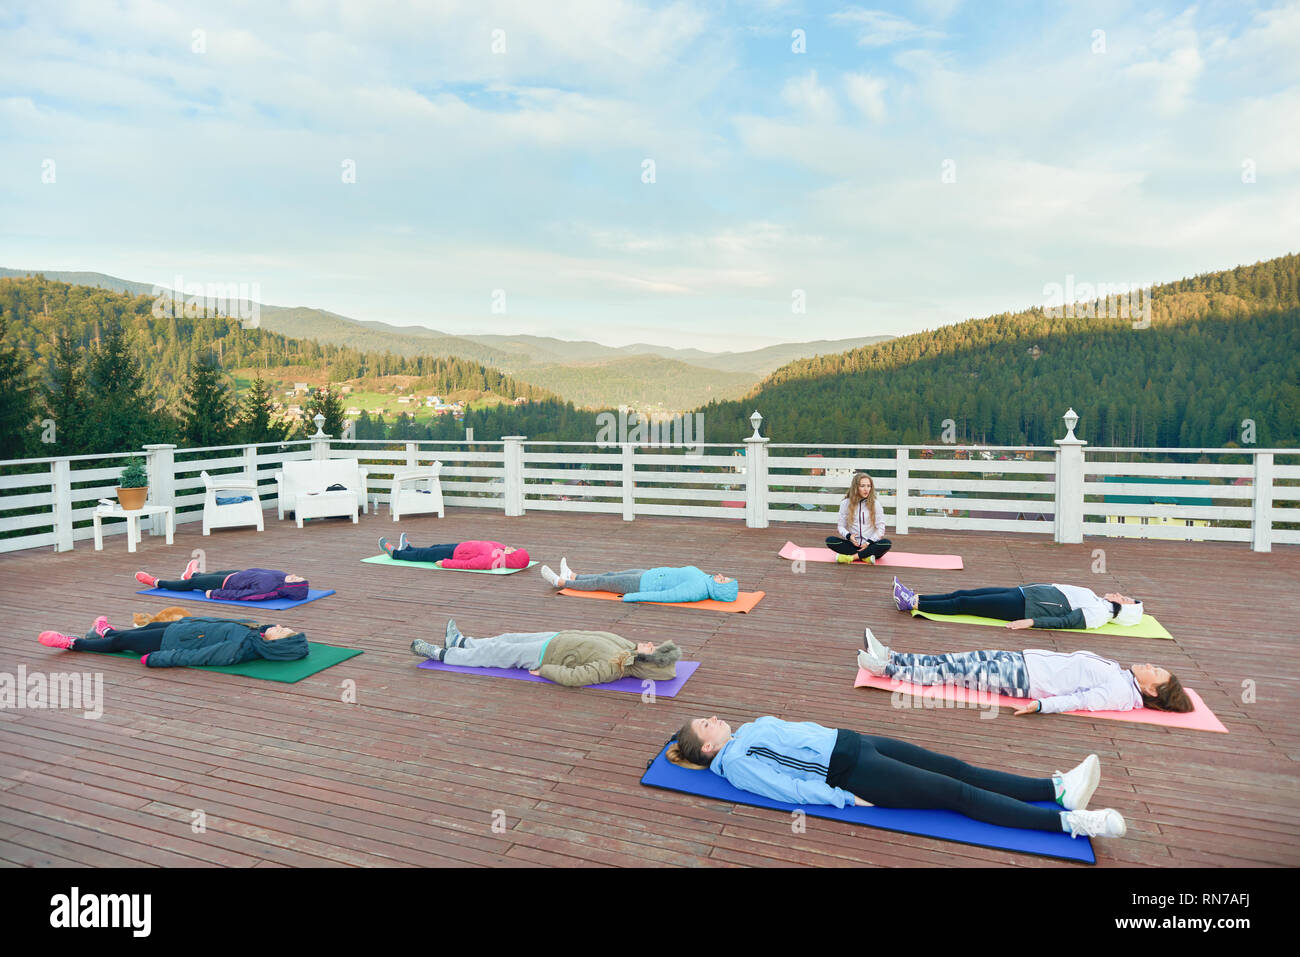 Yoga group practising relaxation on fresh air in mountains. People wearing in sportswear lying on special yoga mats, relaxing and enjoying nature. - Stock Image